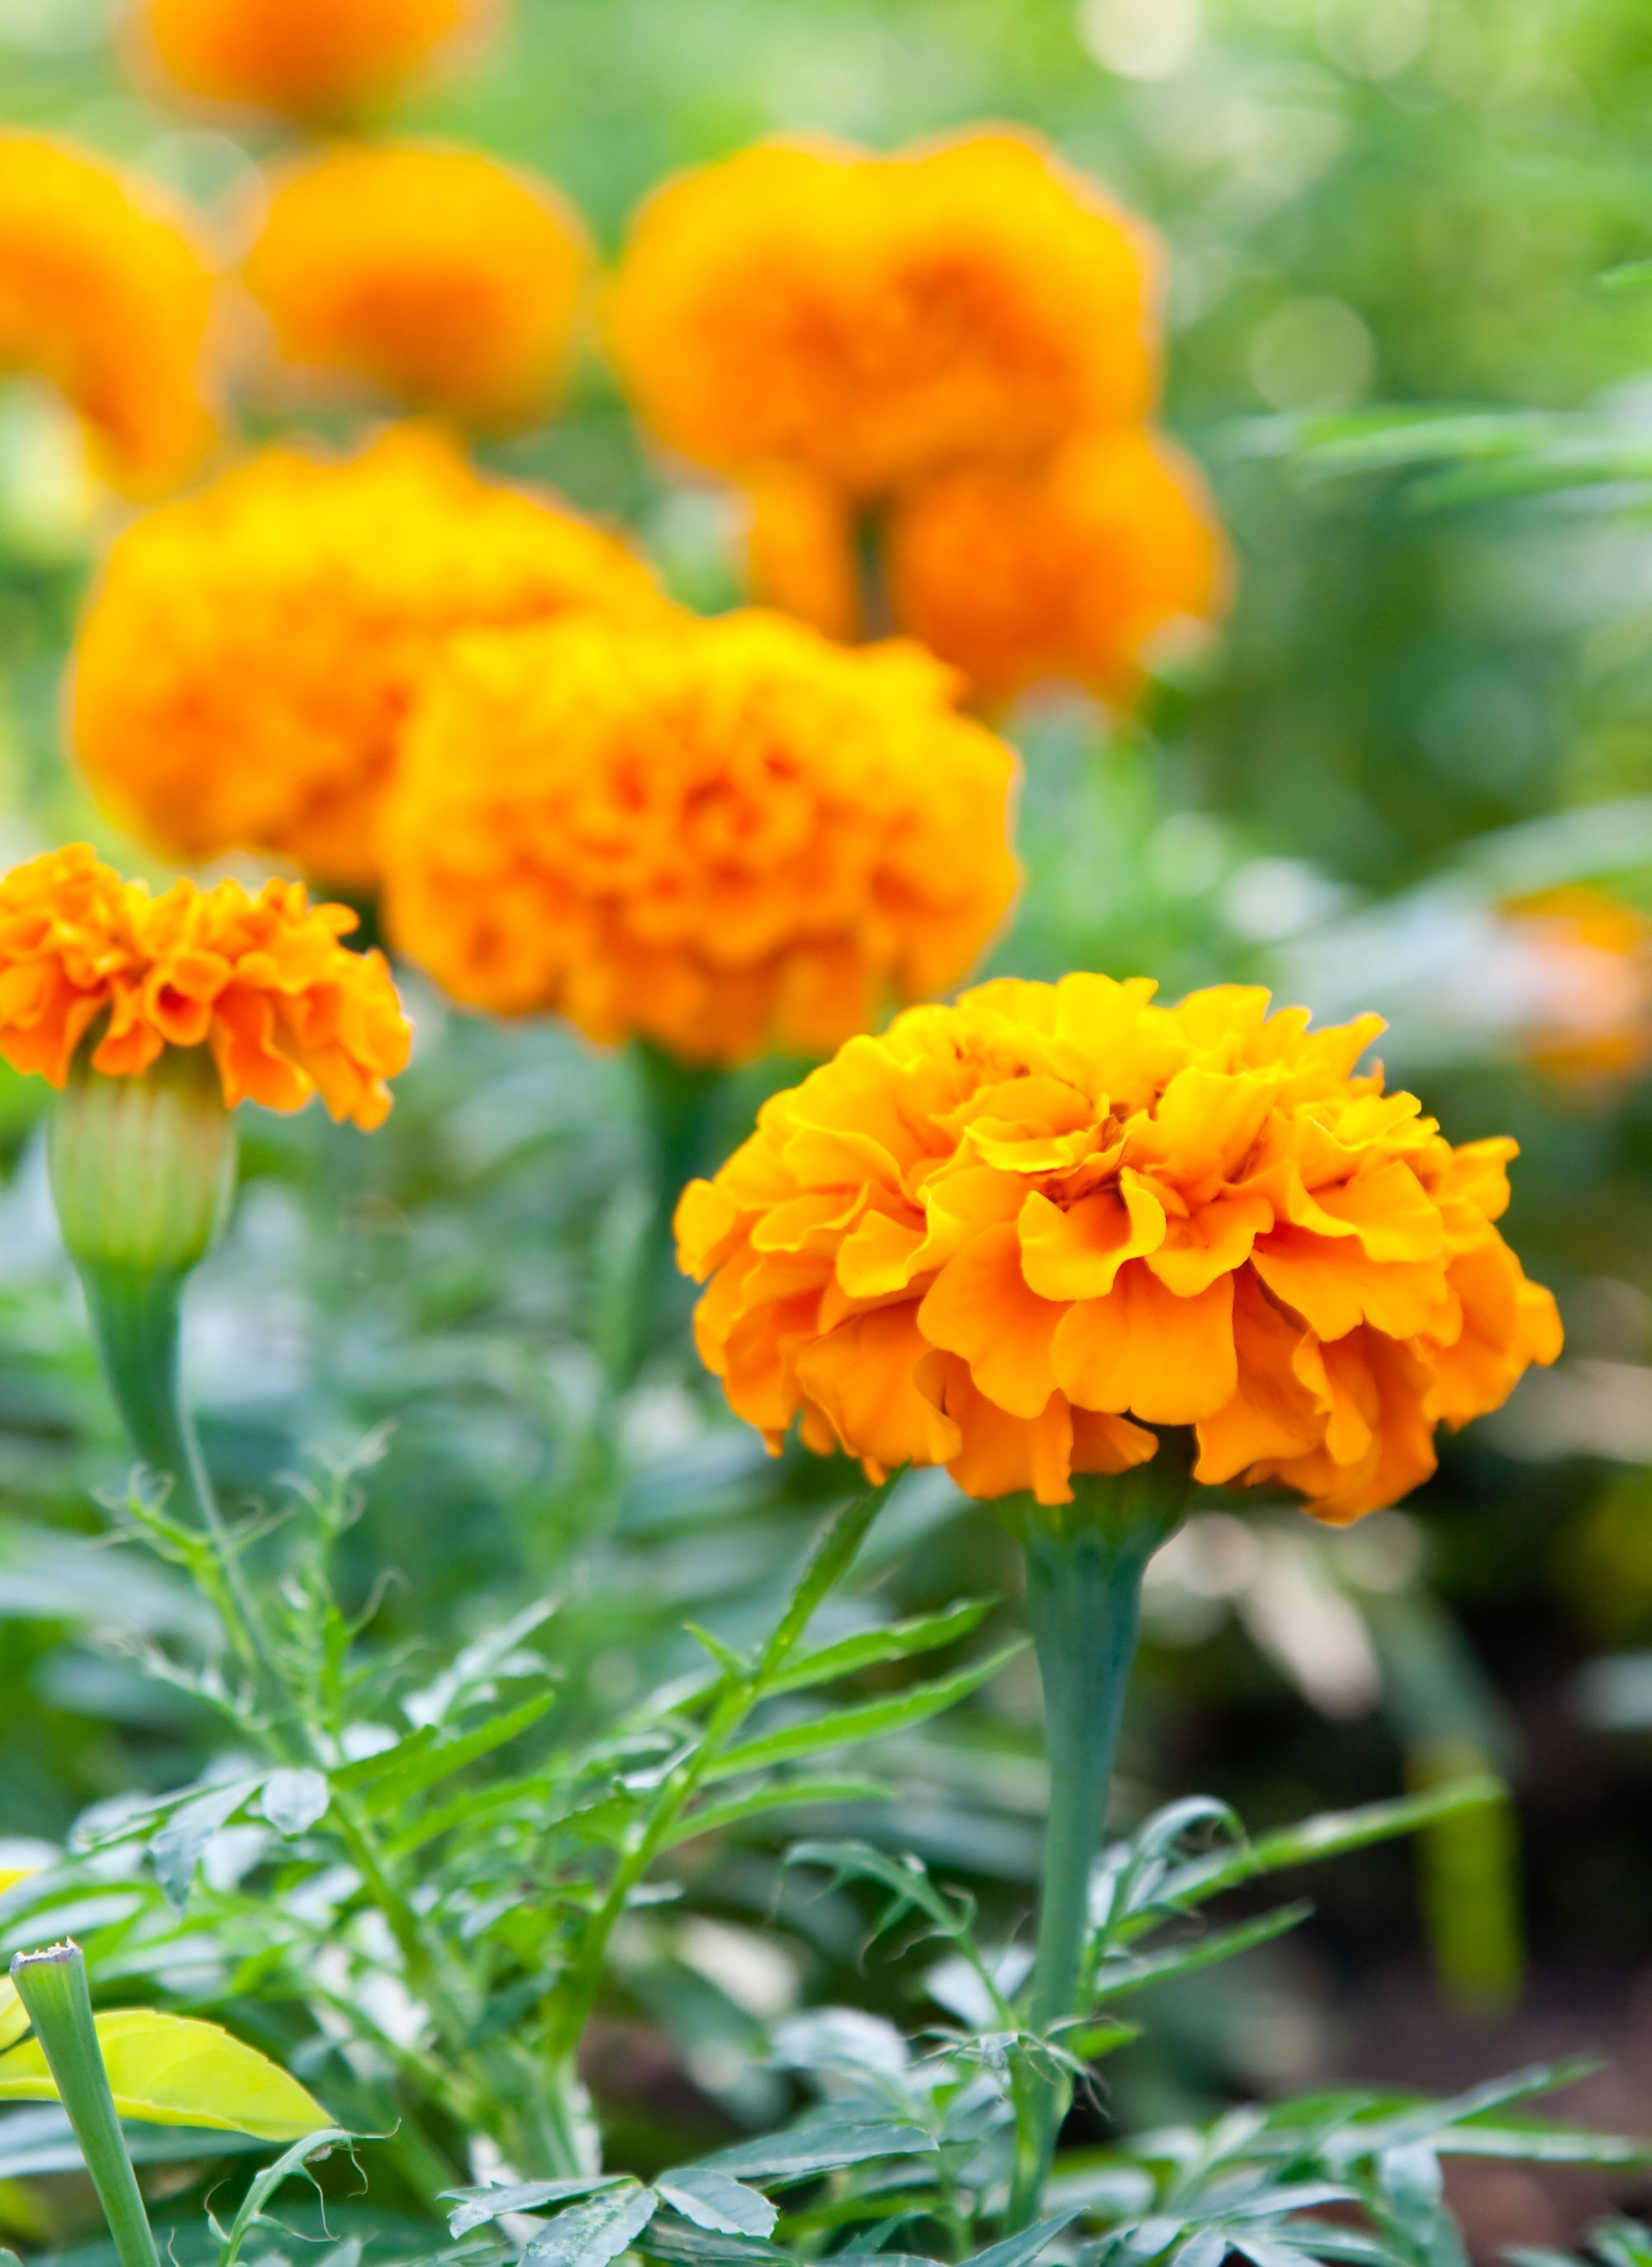 Cat friendly marigold flowers